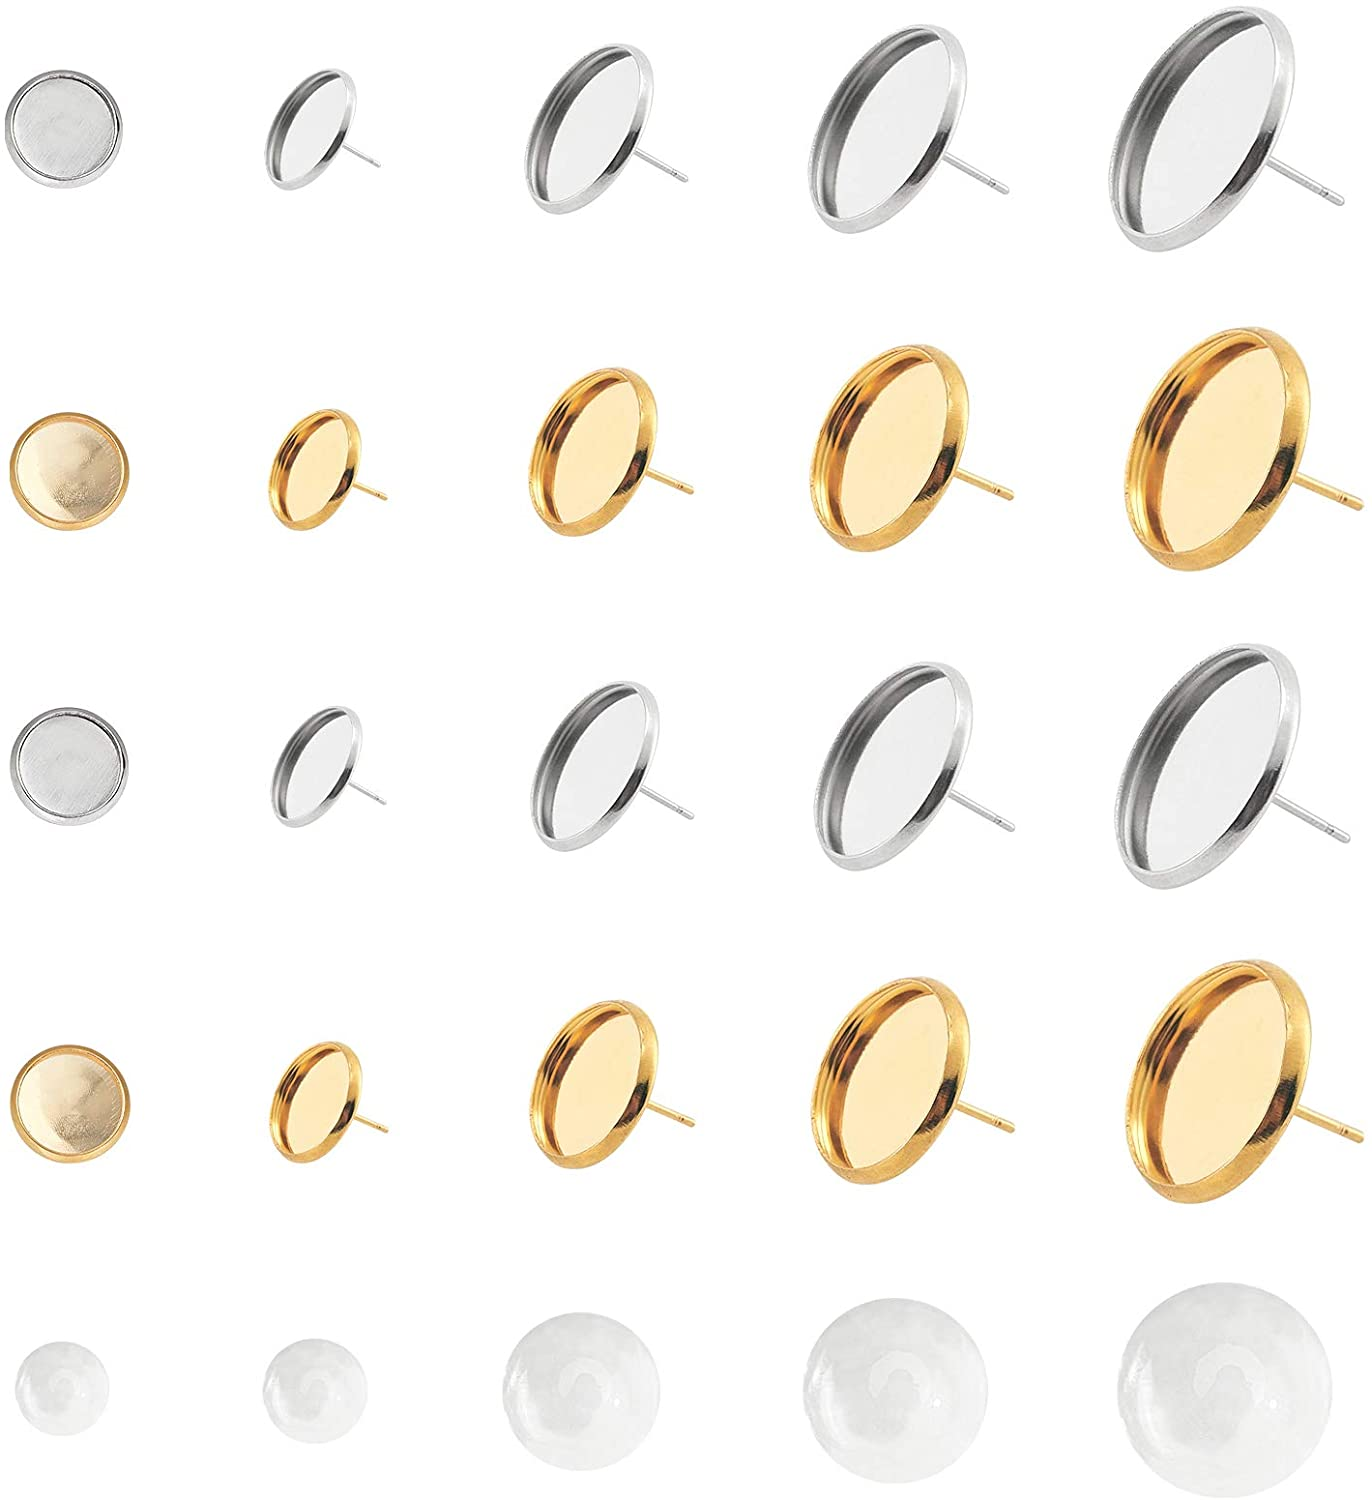 UNICRAFTALE 8 Sizes Earring Bezel with Half Round Cabochons 80 Sets Stainless Steel Stud Earring Cabochon Setting Earring Blank Bezel Tray for Earring Jewelry Making